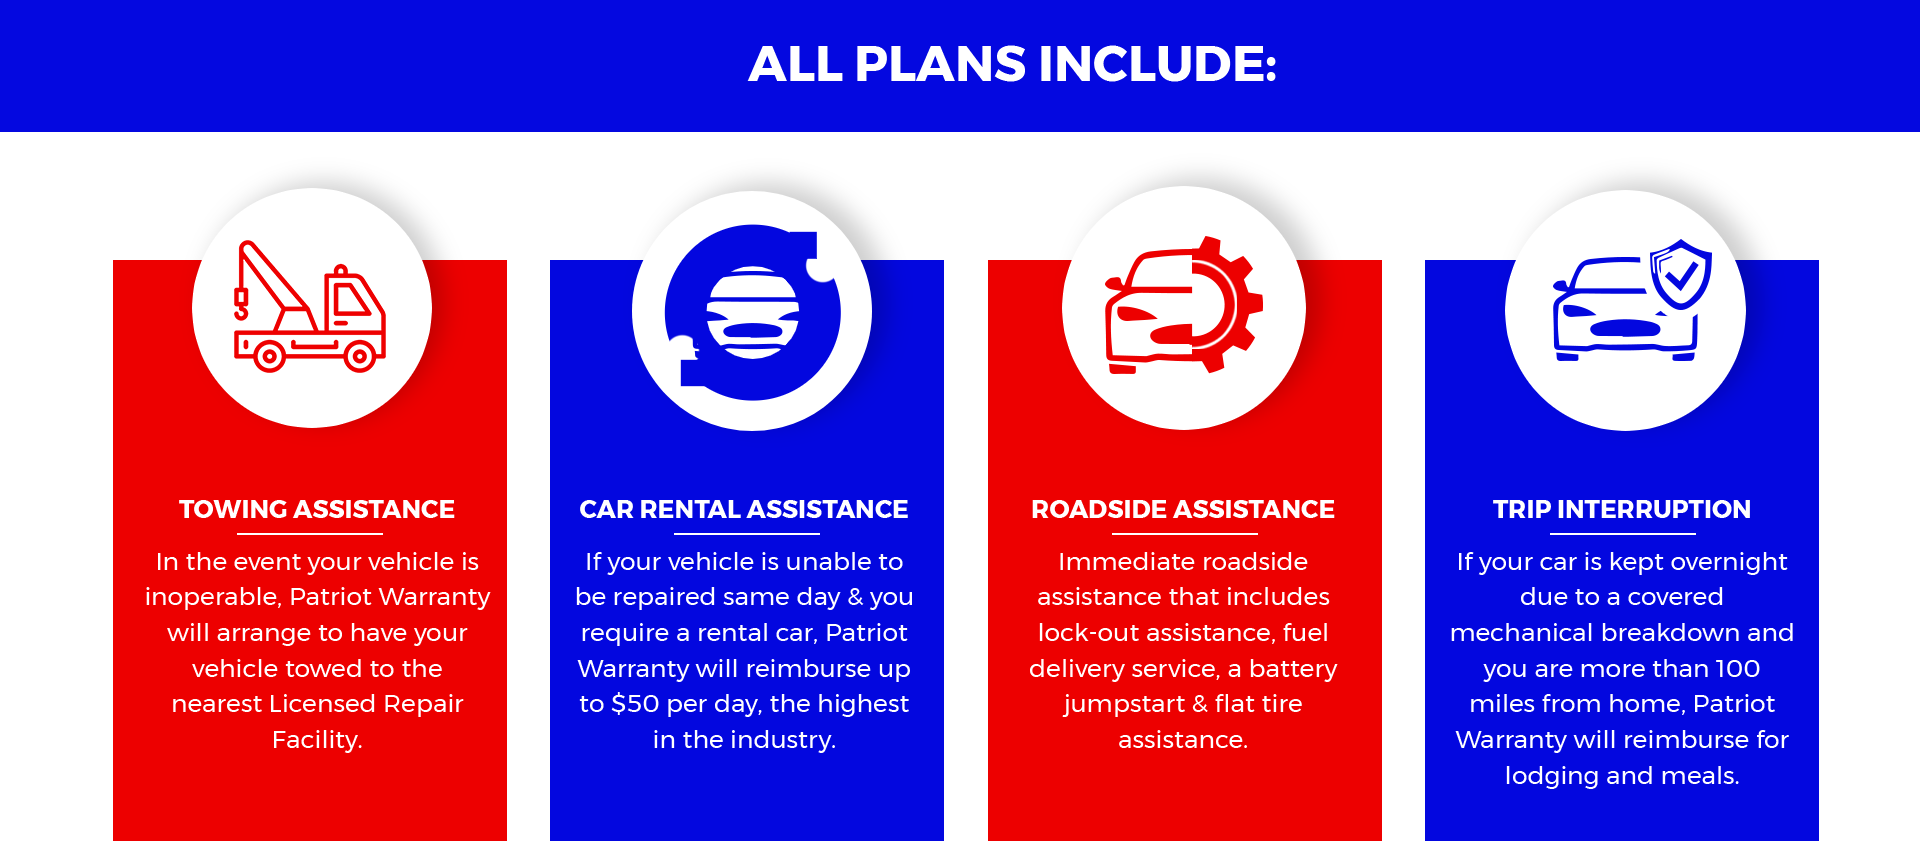 Car Rental Assistance